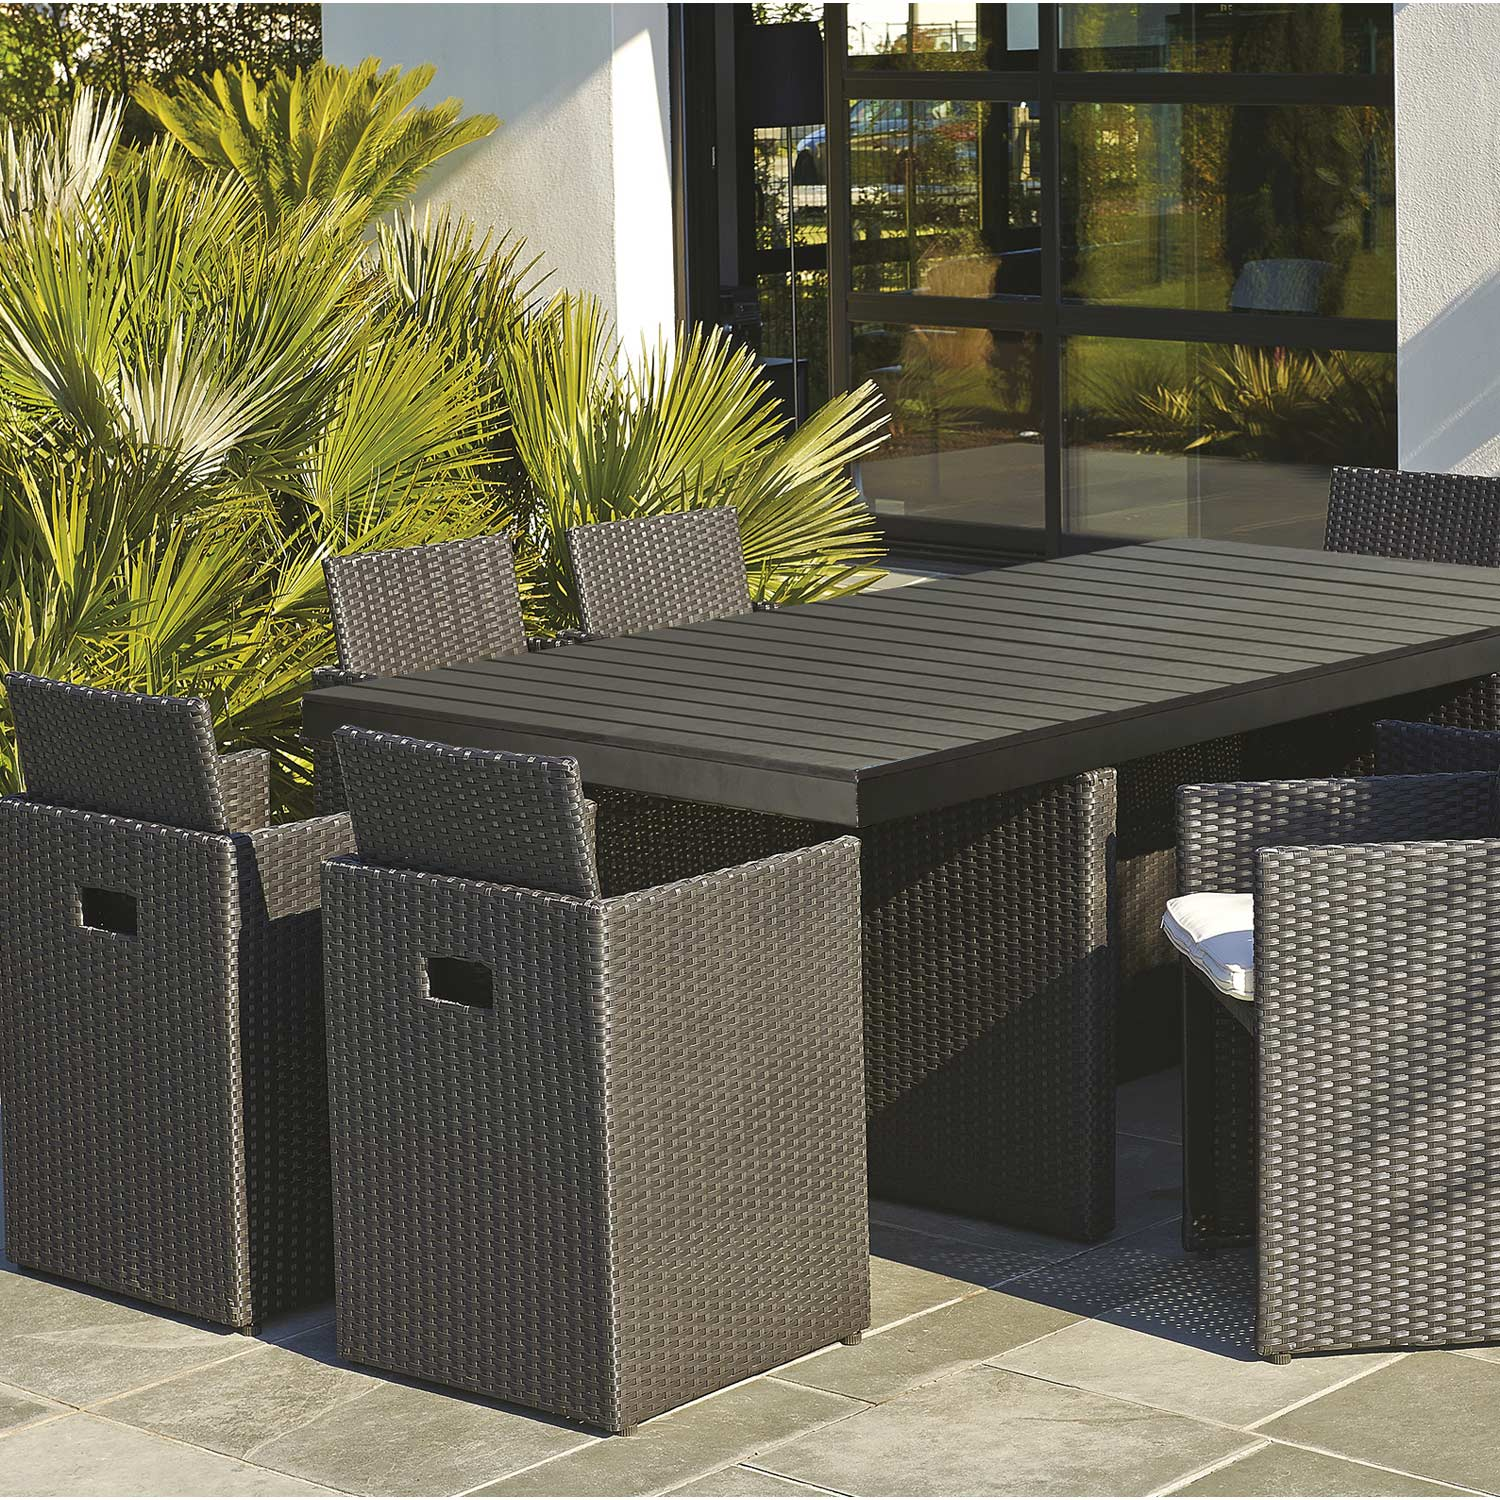 Salon de jardin encastrable r sine tress e noir 1 table - Salon de jardin resine tressee solde ...